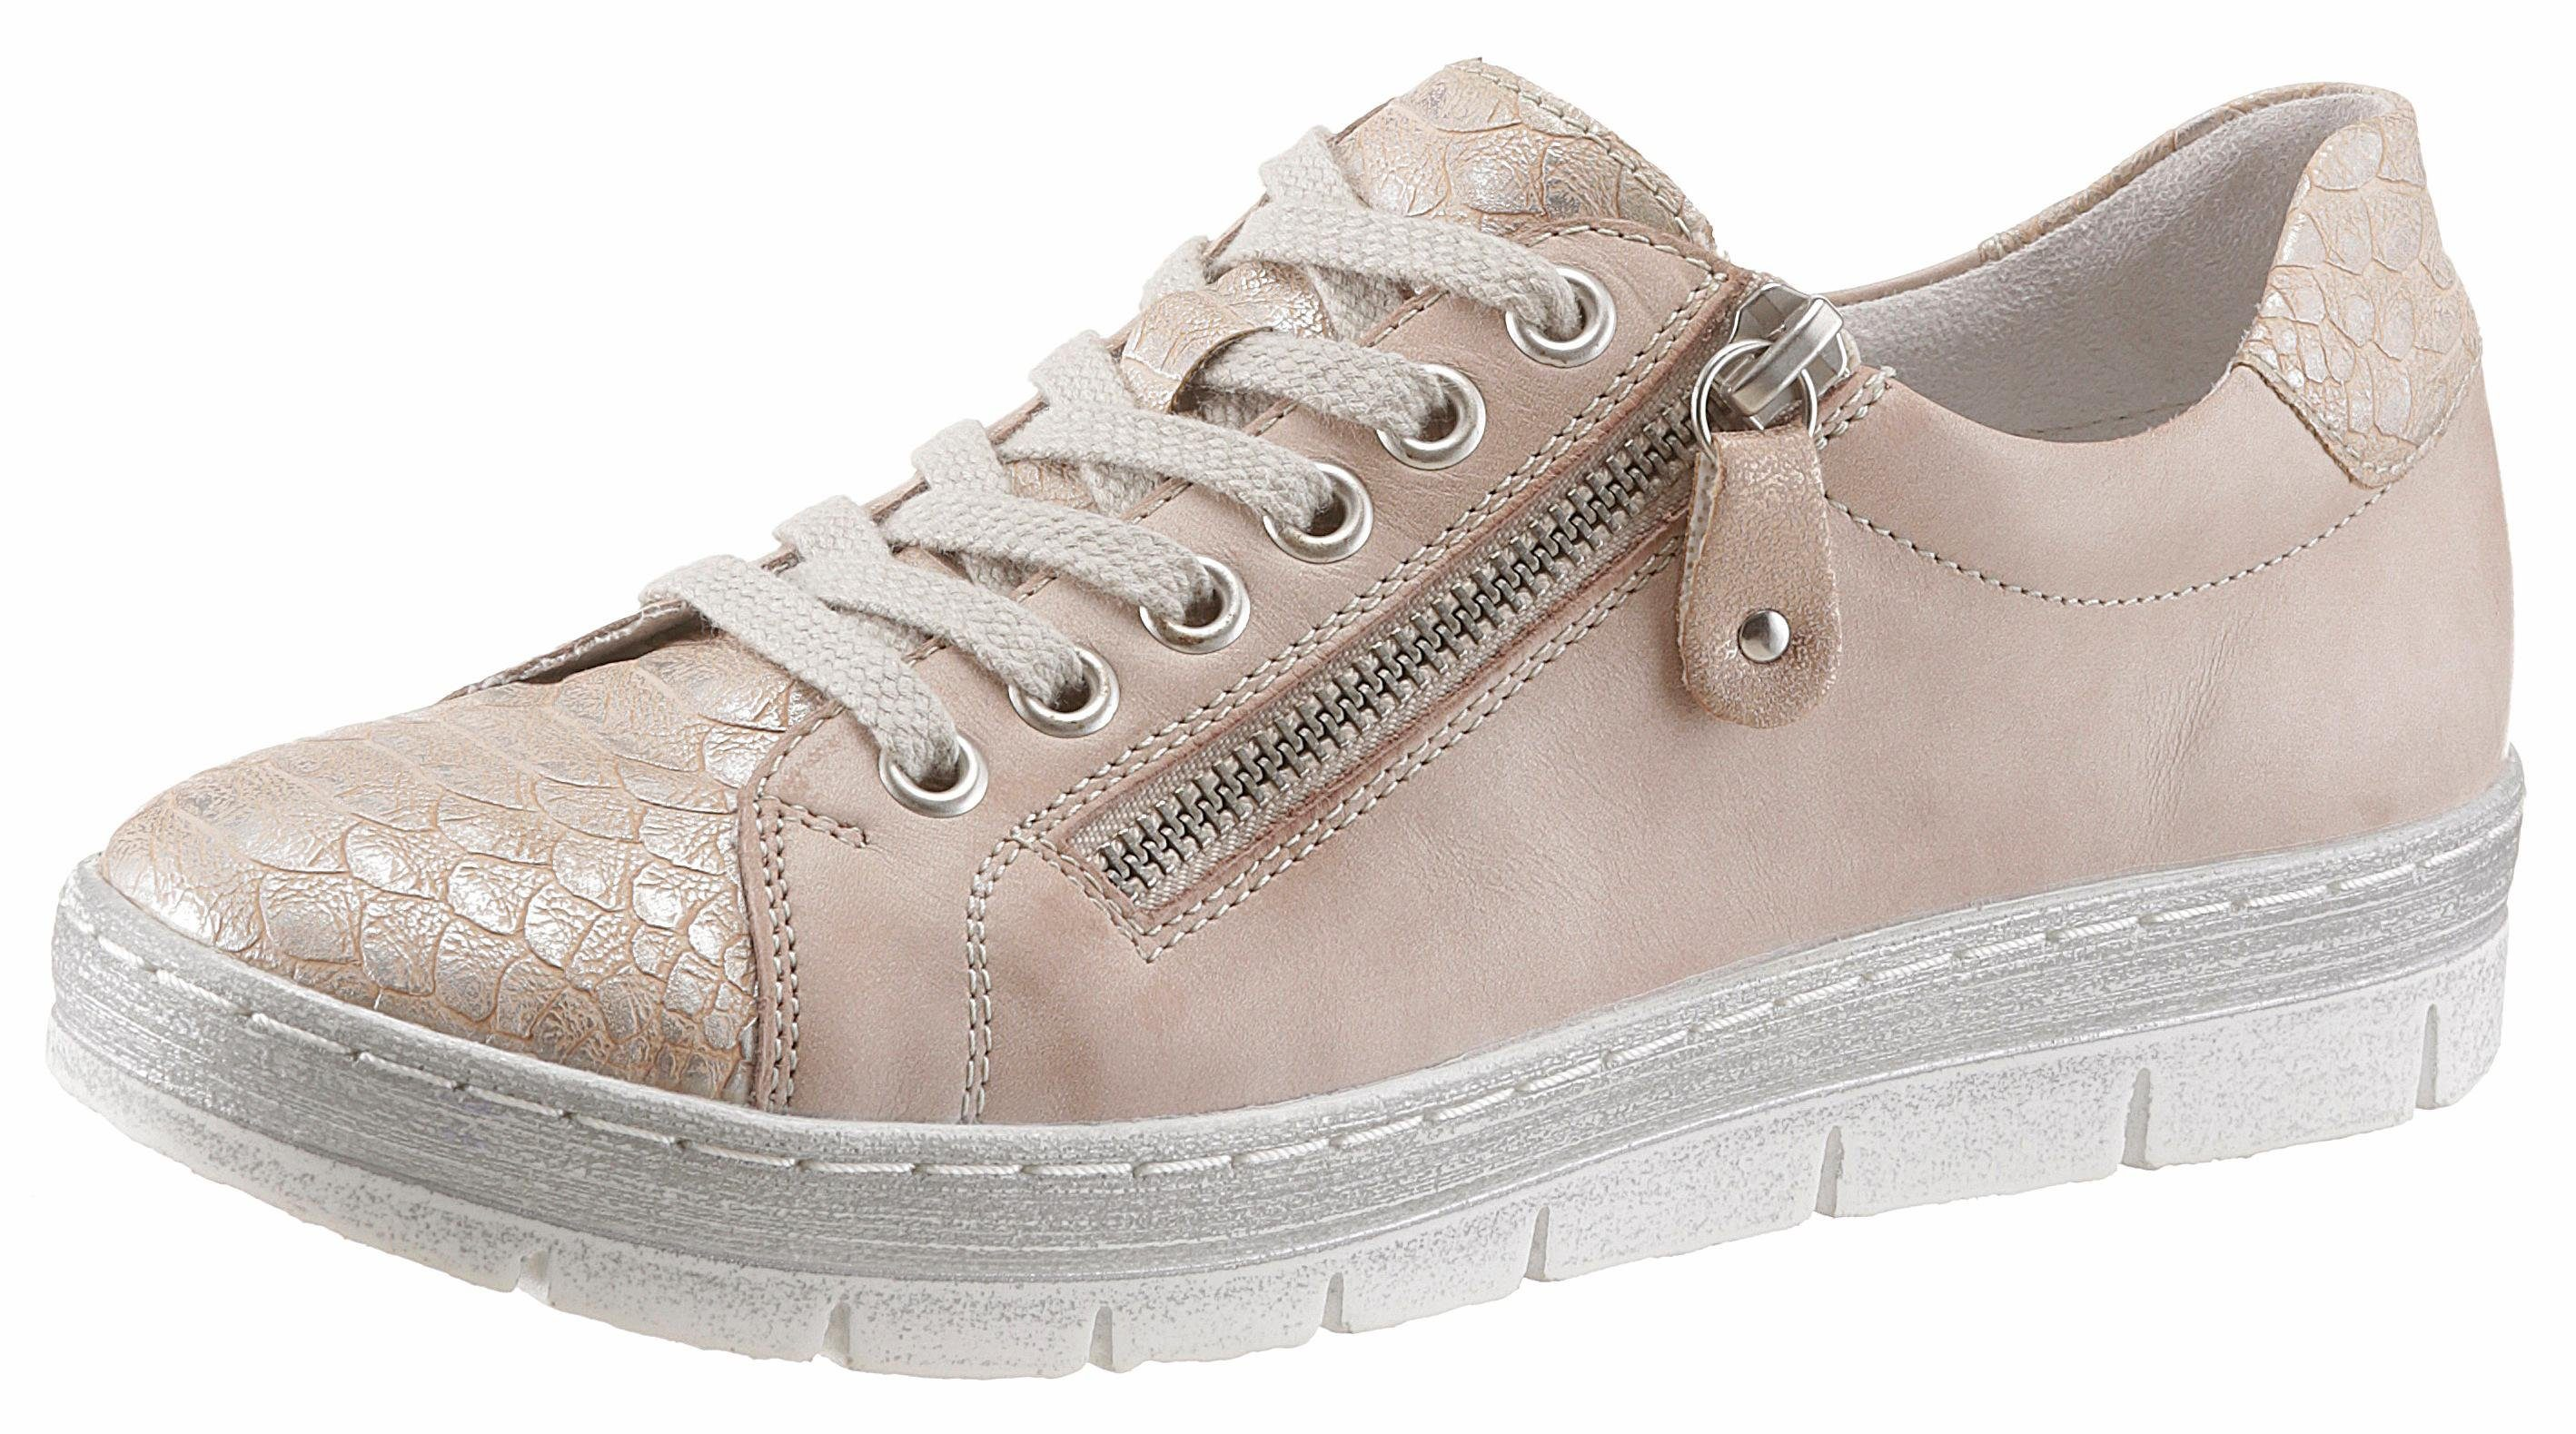 Remonte Sneakers Beige QubDy